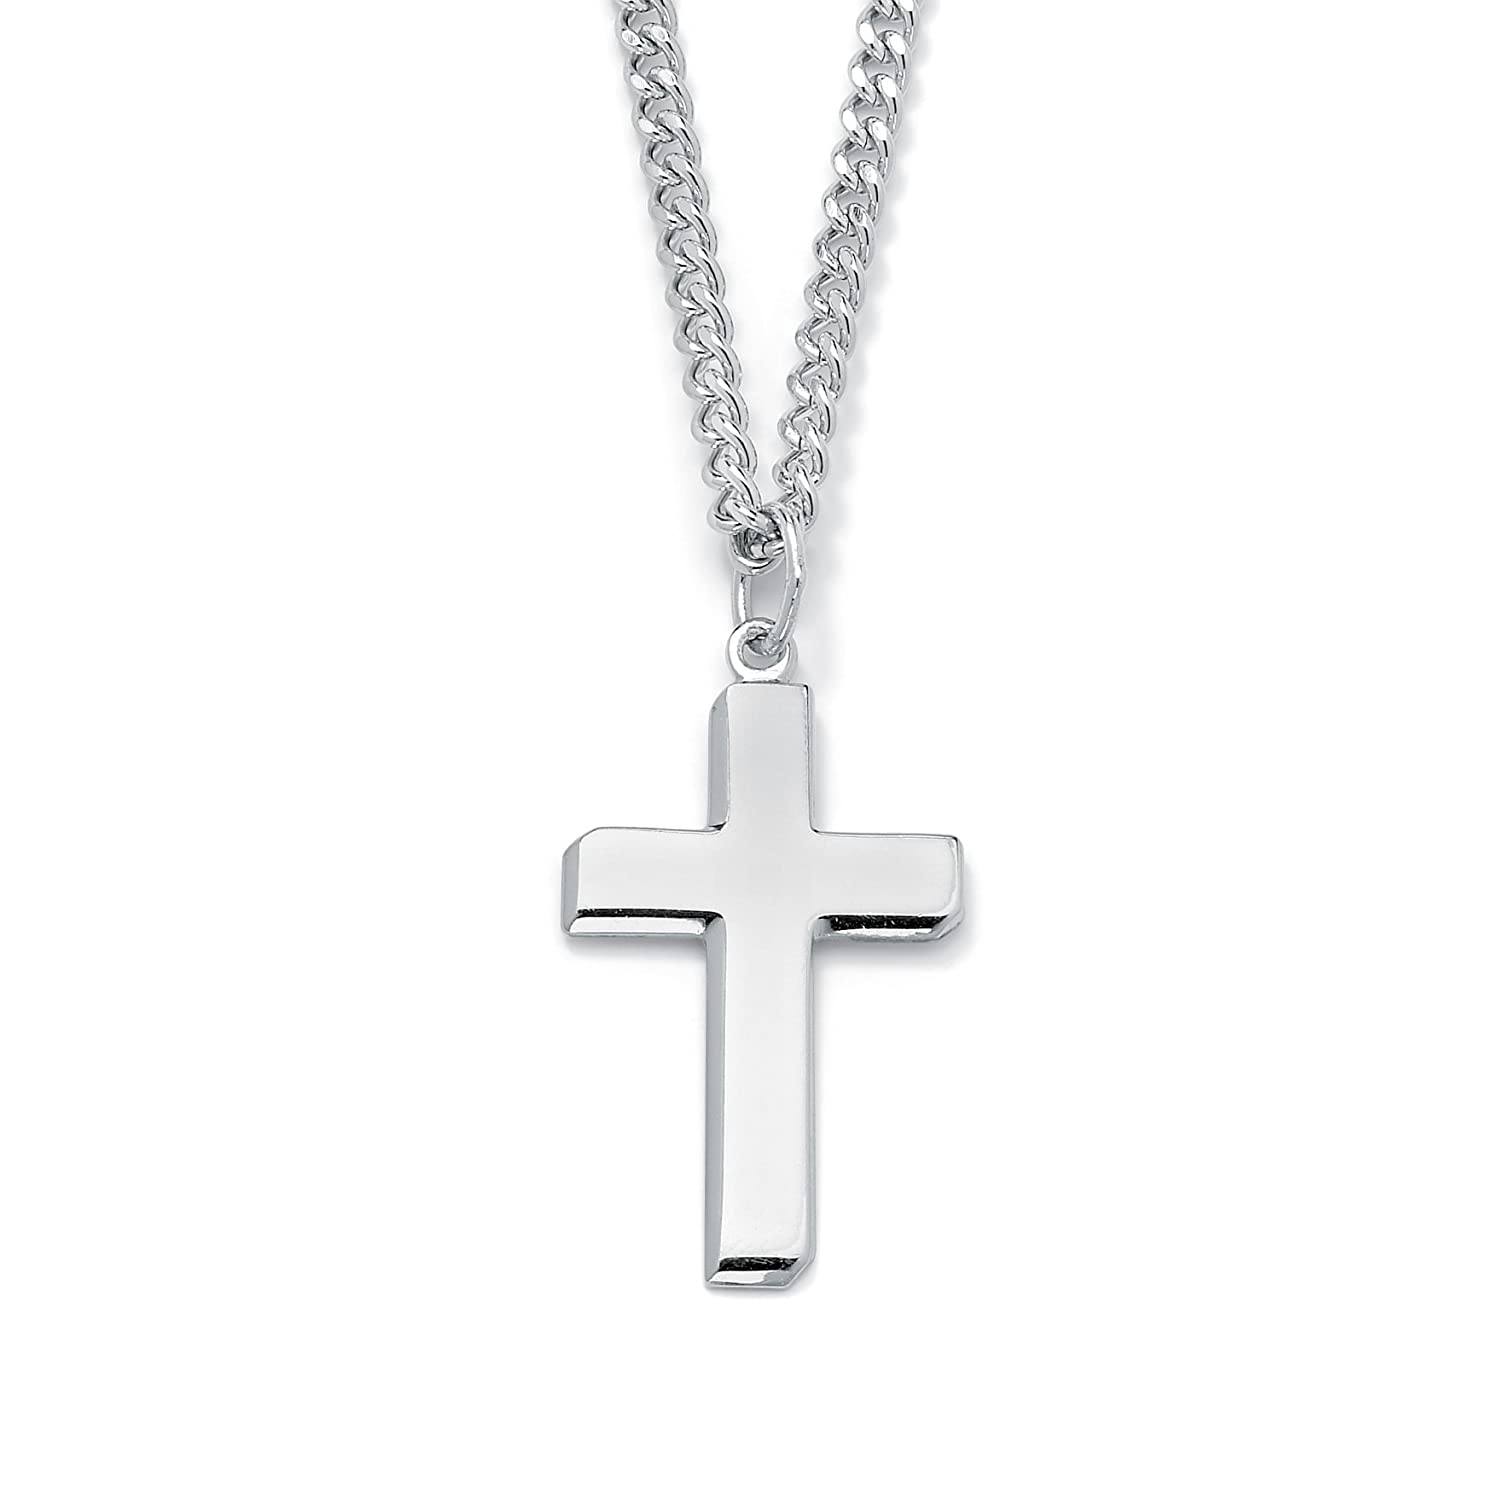 spicyice chain pin cross jesus mens steel gold stainless crucifix pendant necklace silver baseball